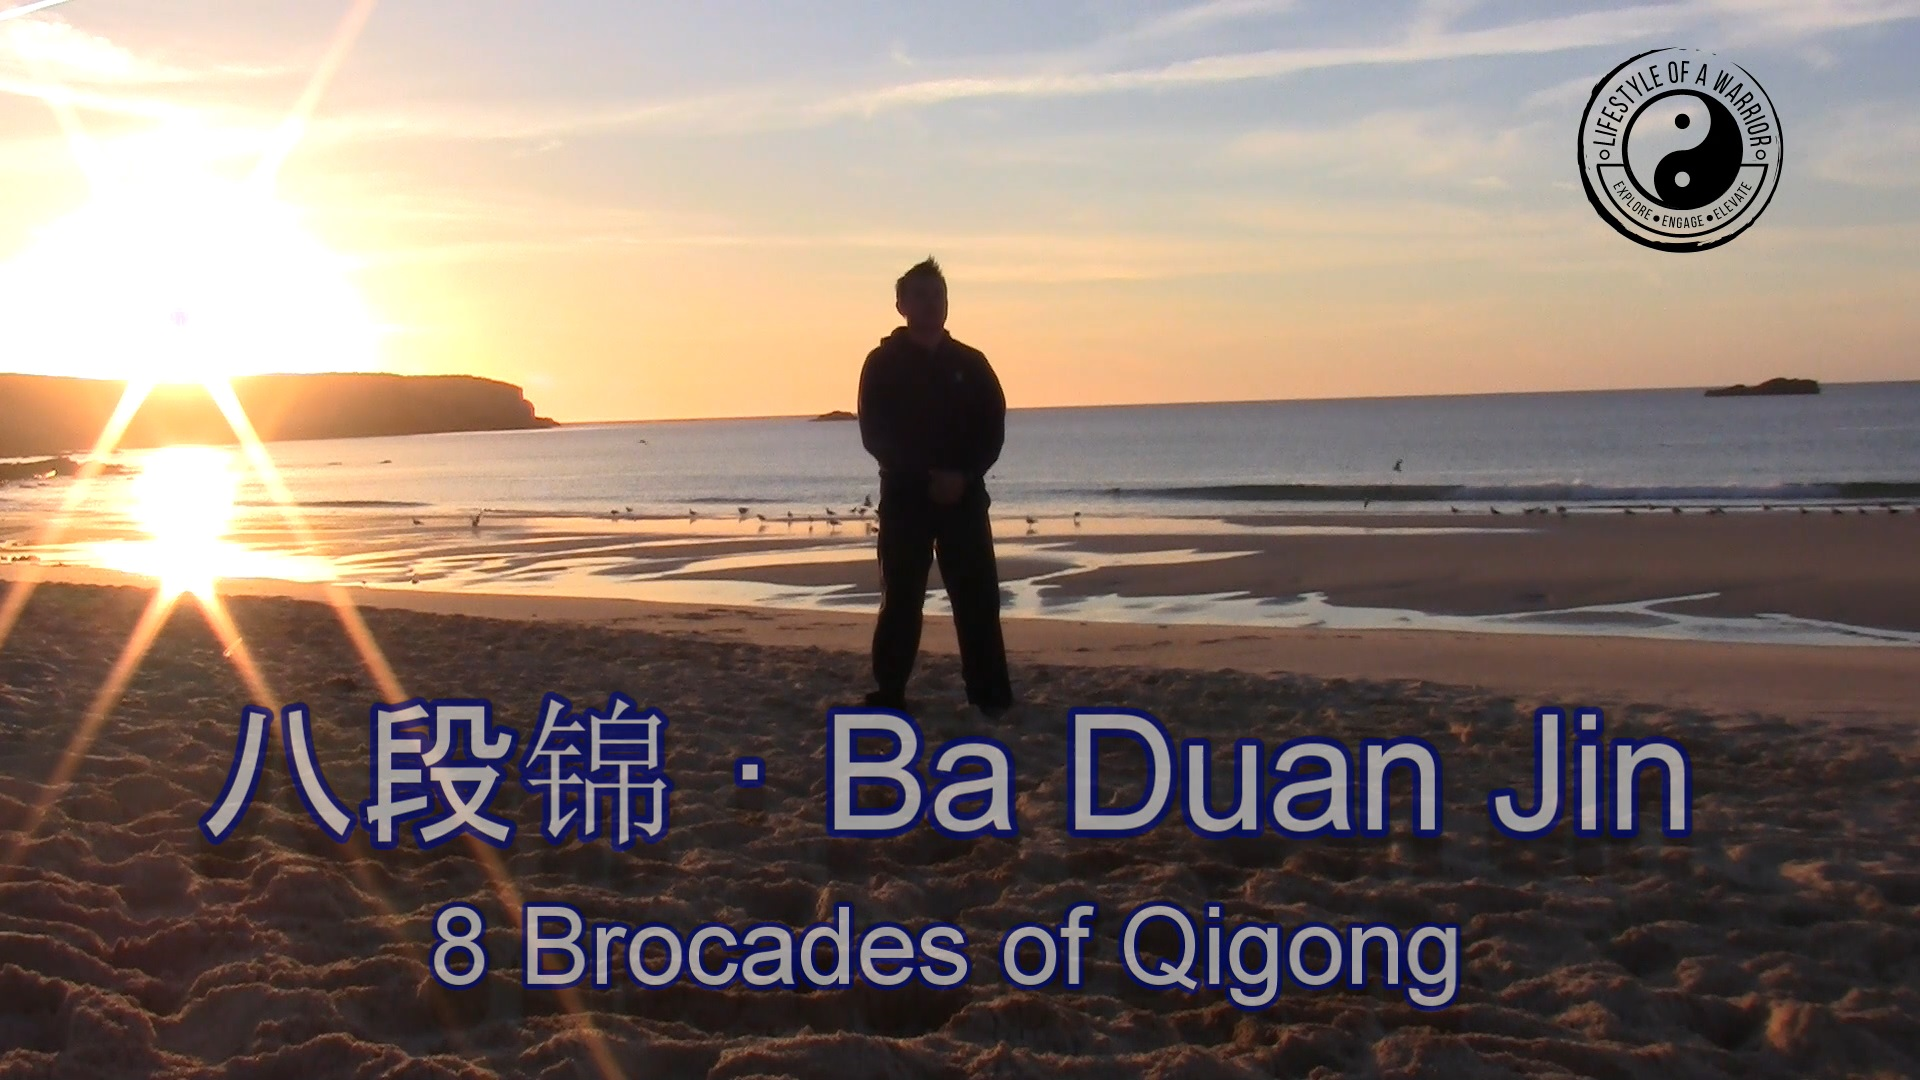 LIMITED OFFER: Ba Duan Jin / 八段锦 · (8 Brocades of Qigong) Instructional Video